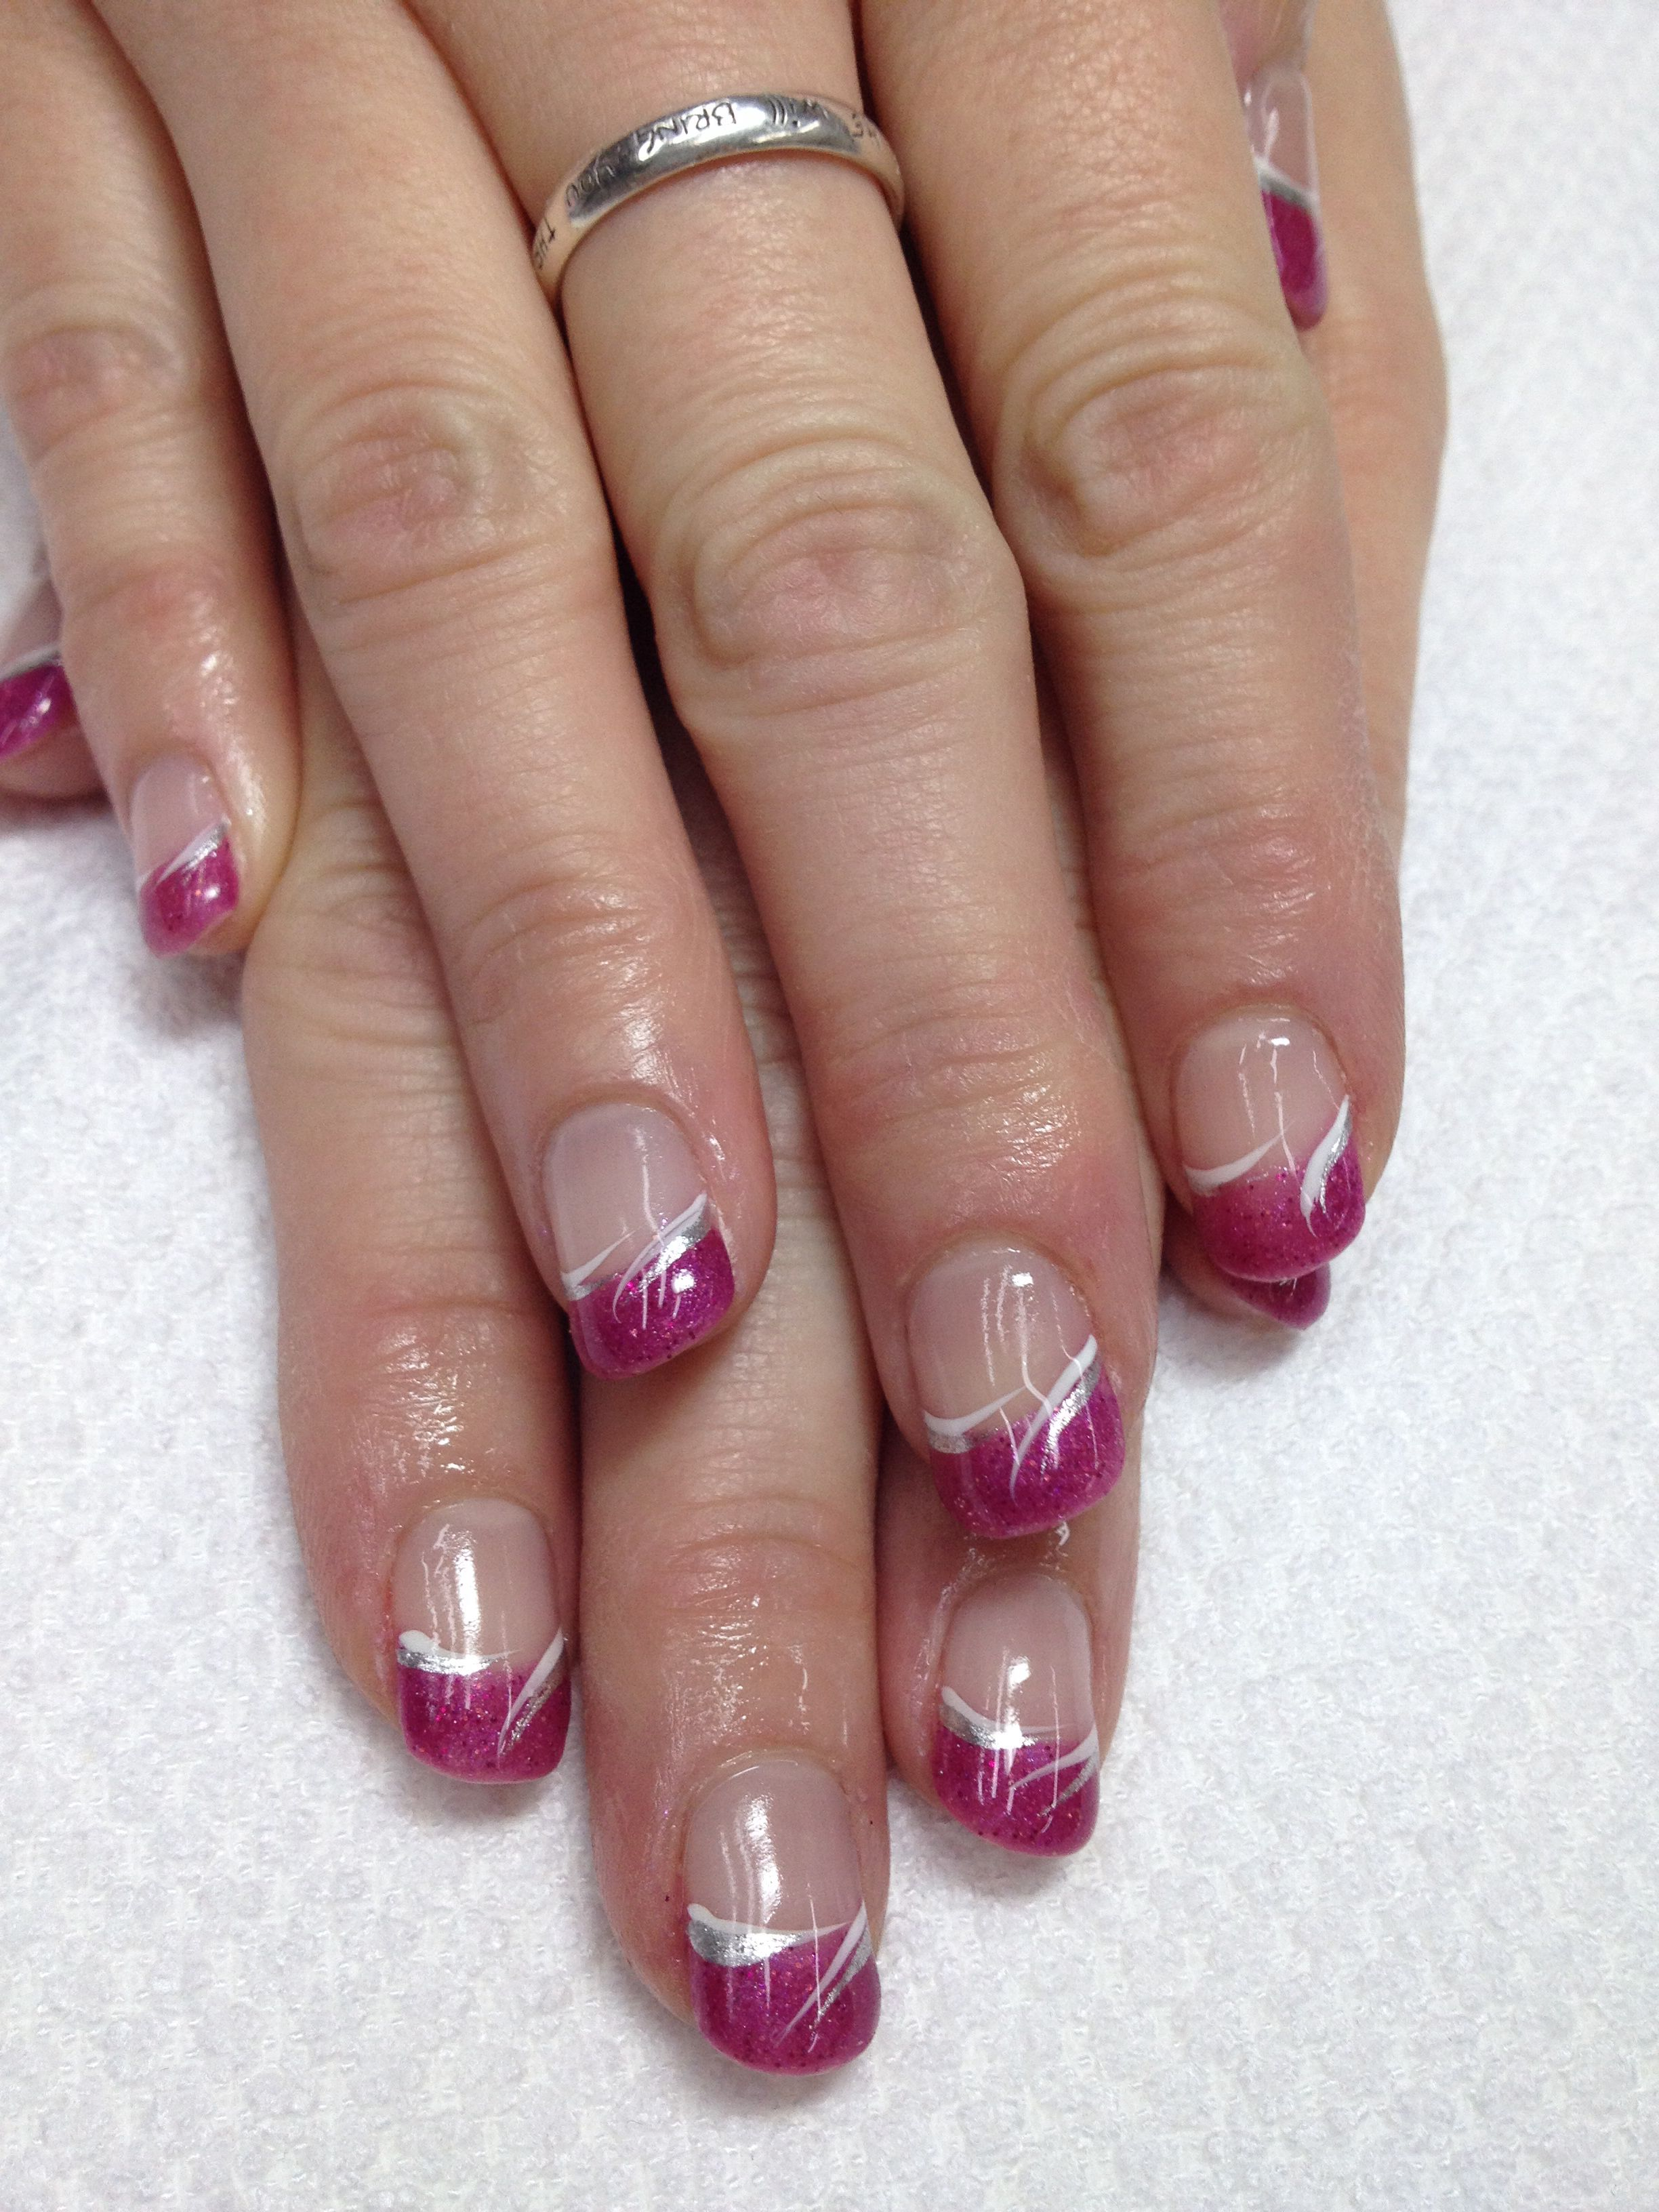 Love These Fun Pink French Gel Nails And Swished Accents Ties The Whole Look Together Of Cours French Manicure Nail Designs Manicure Nail Designs Gel Nails